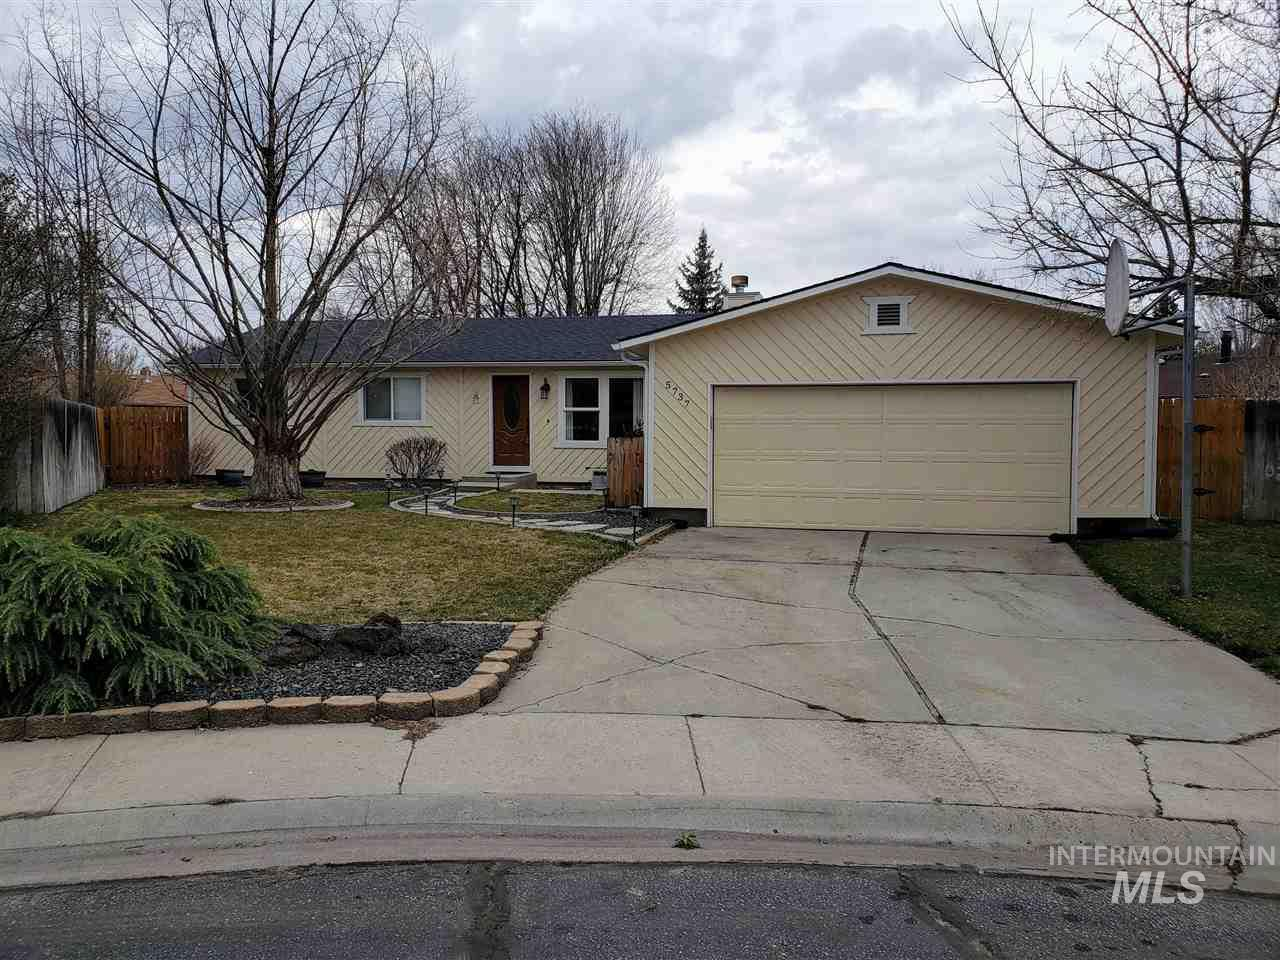 5737 N Milldam Pl, Garden City, Idaho 83714, 3 Bedrooms, 2 Bathrooms, Residential For Sale, Price $279,900, 98721958